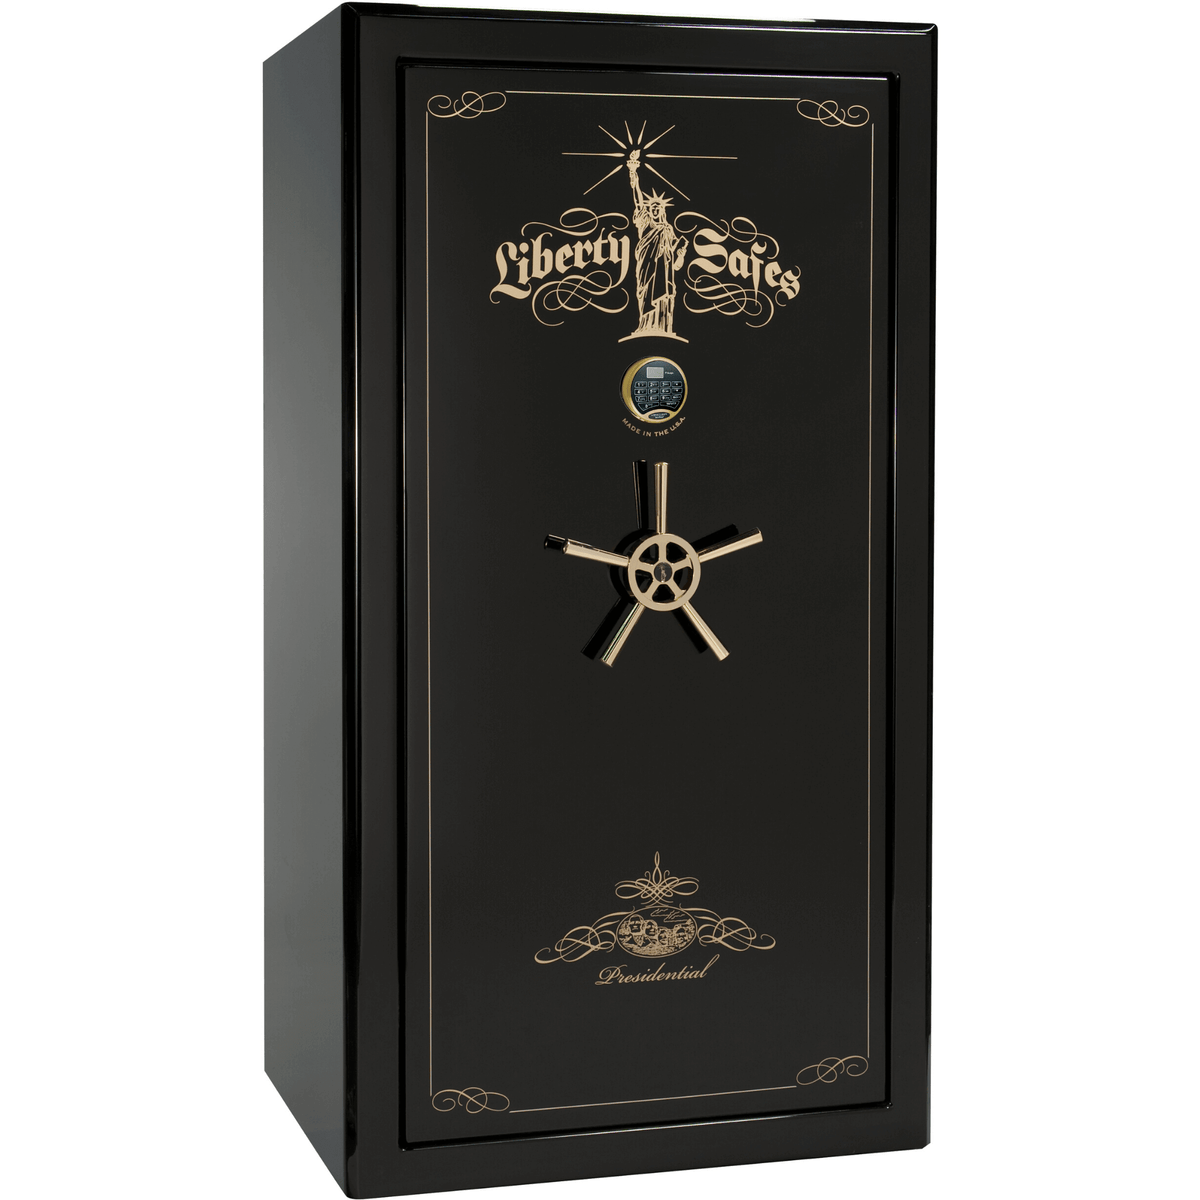 "Presidential | 40 | Level 8 Security | 150 Minute Fire Protection | Black Gloss | Brass Electronic Lock | 65.5""(H) x 36""(W) x 32""(D)"